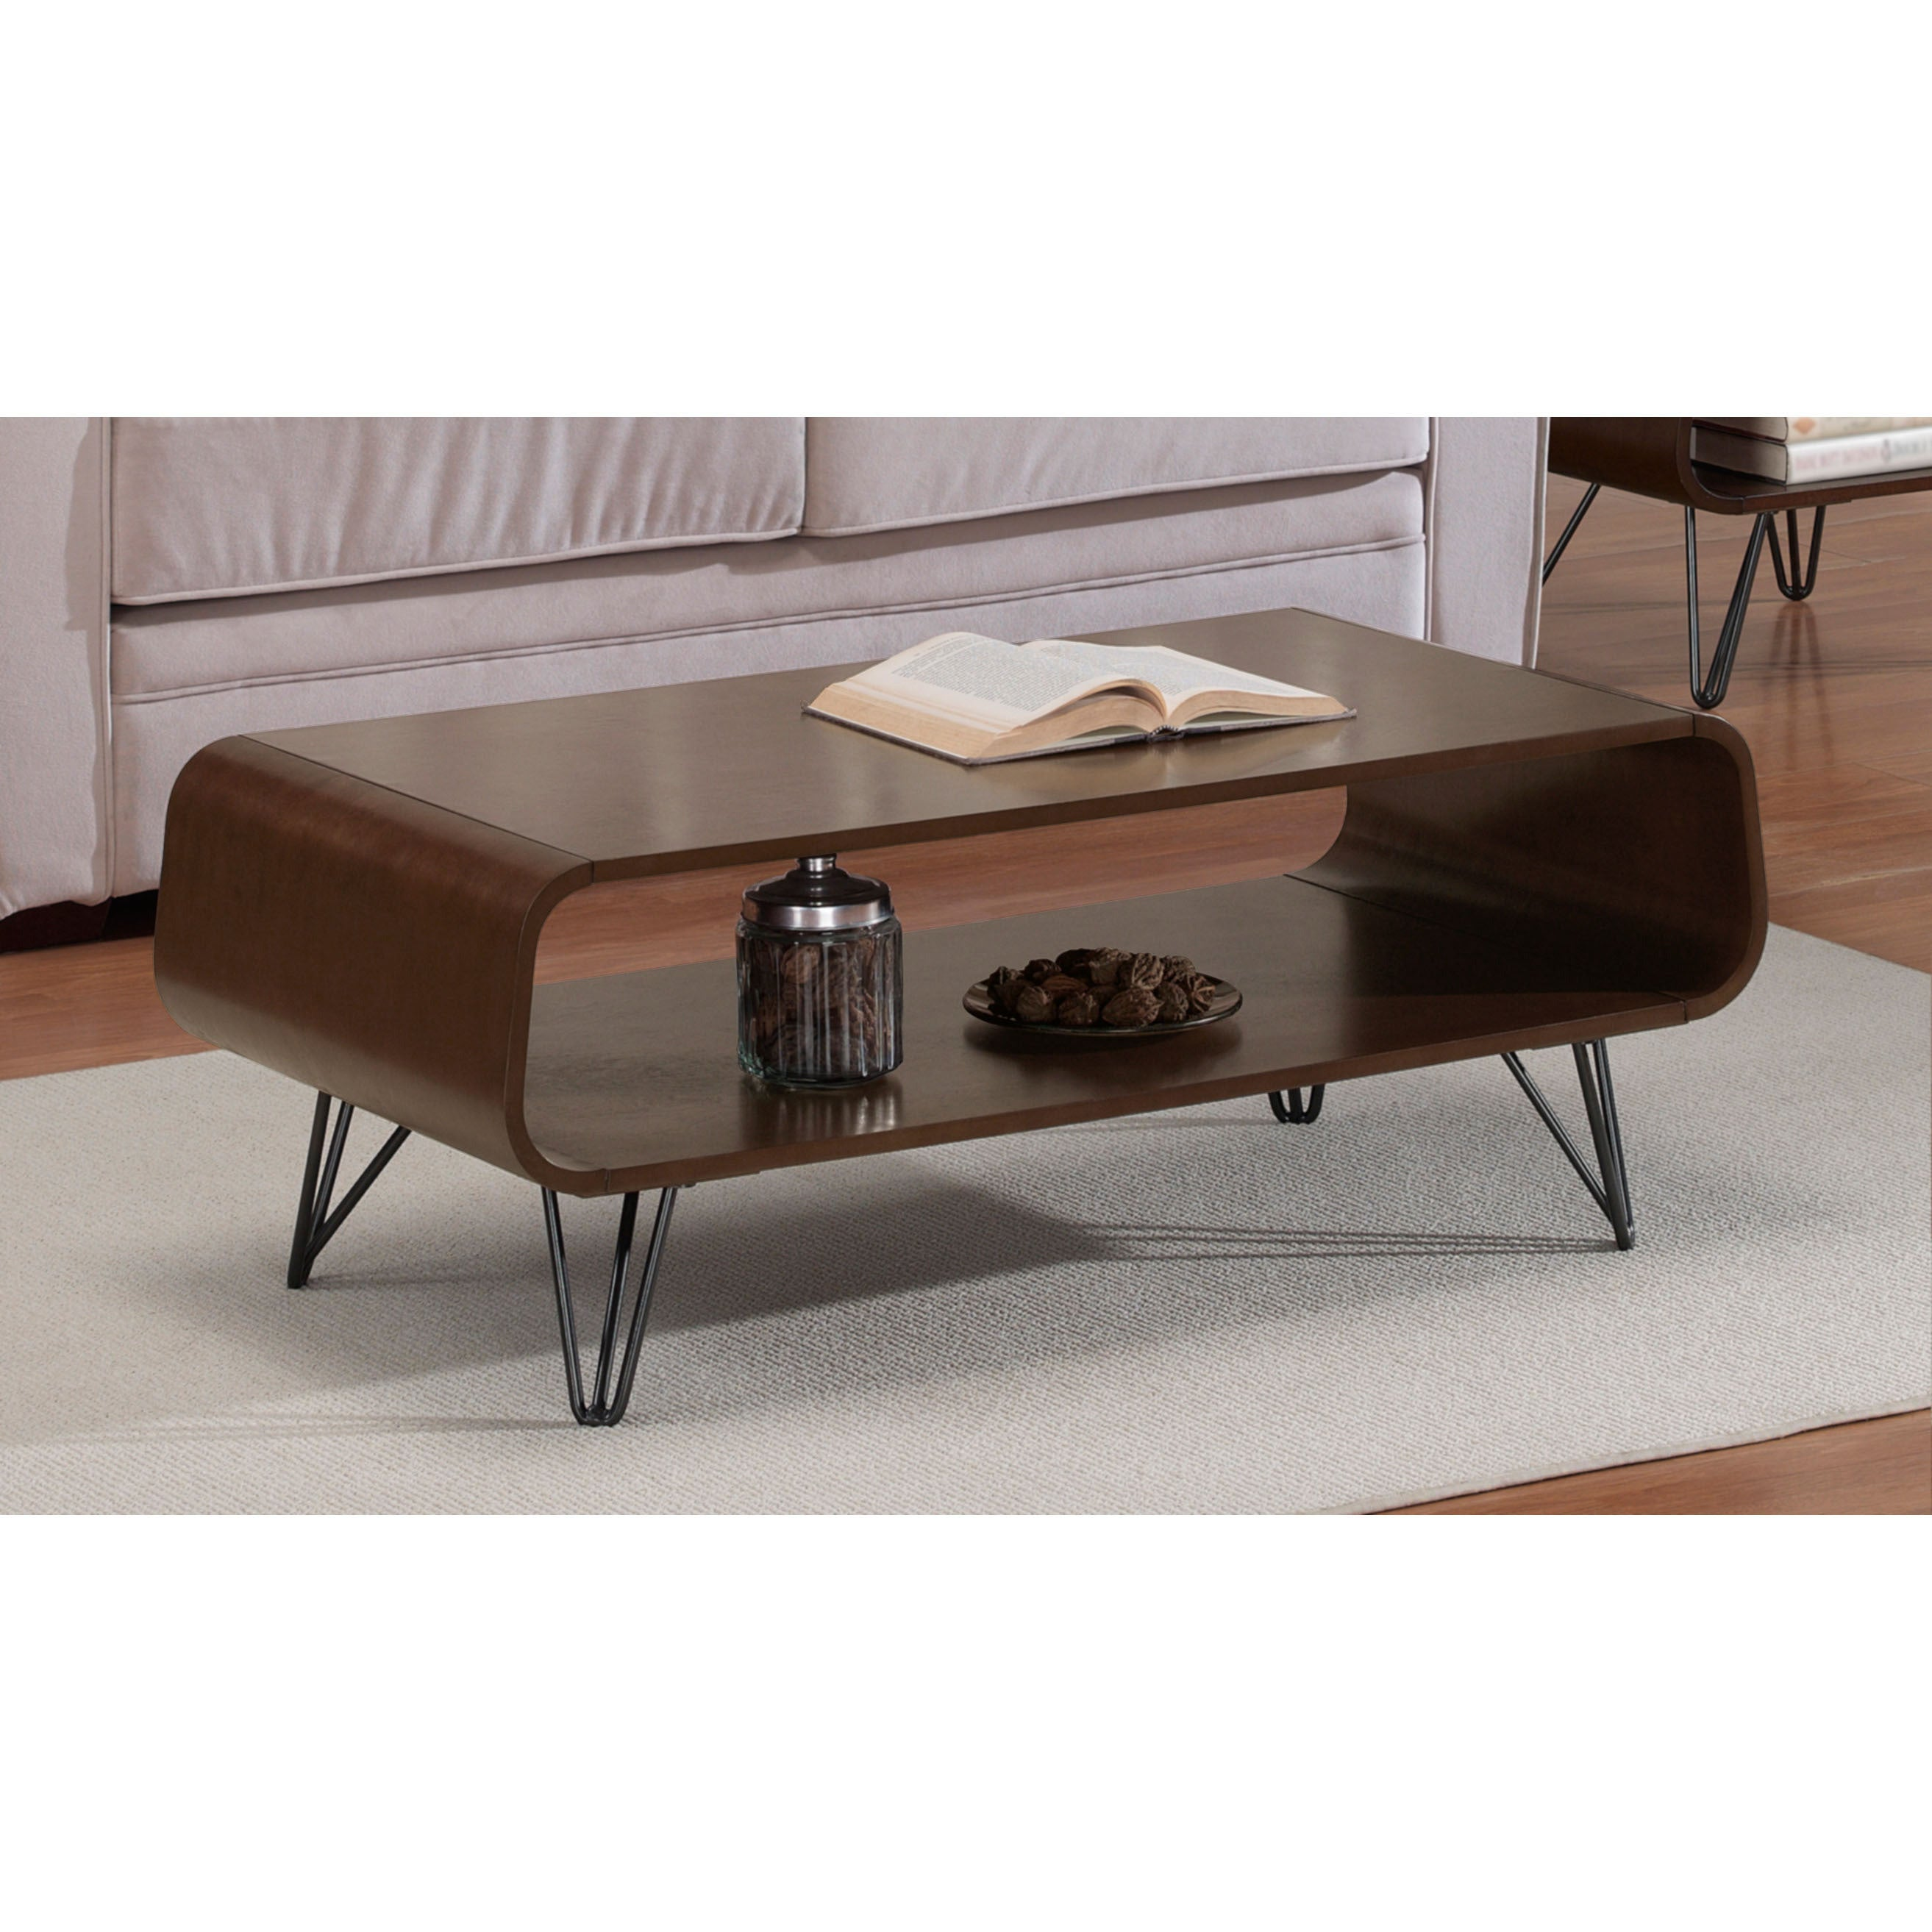 Stupendous Buy Coffee Tables Online At Overstock Our Best Living Room Lamtechconsult Wood Chair Design Ideas Lamtechconsultcom